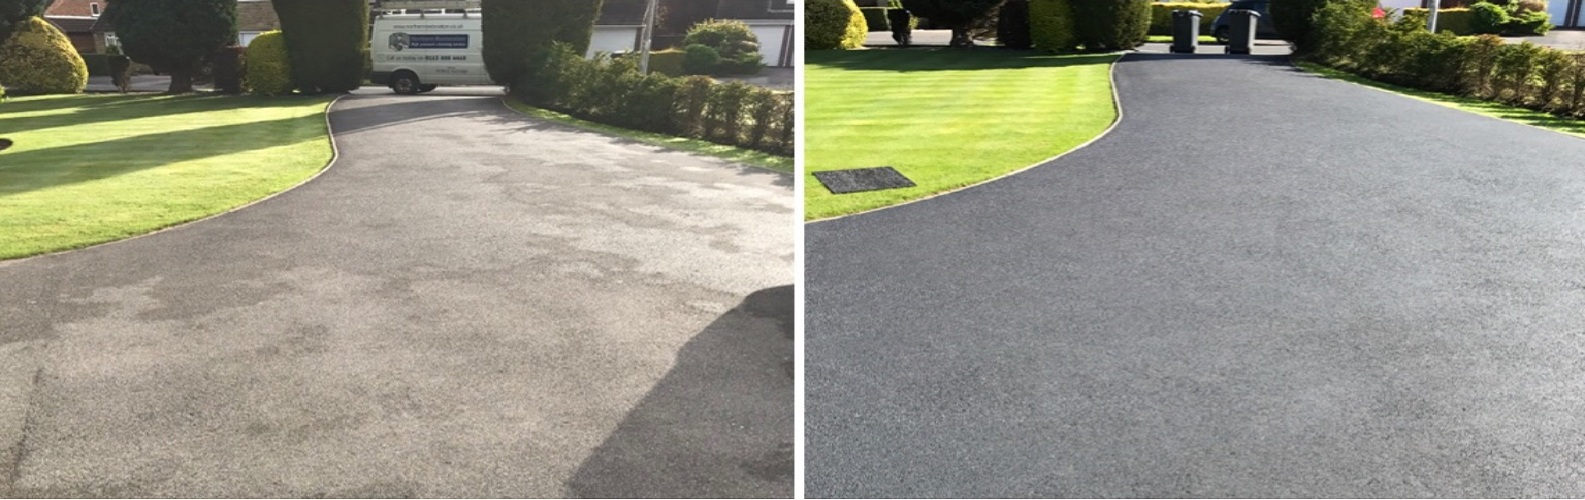 tarmac-paint-sealing